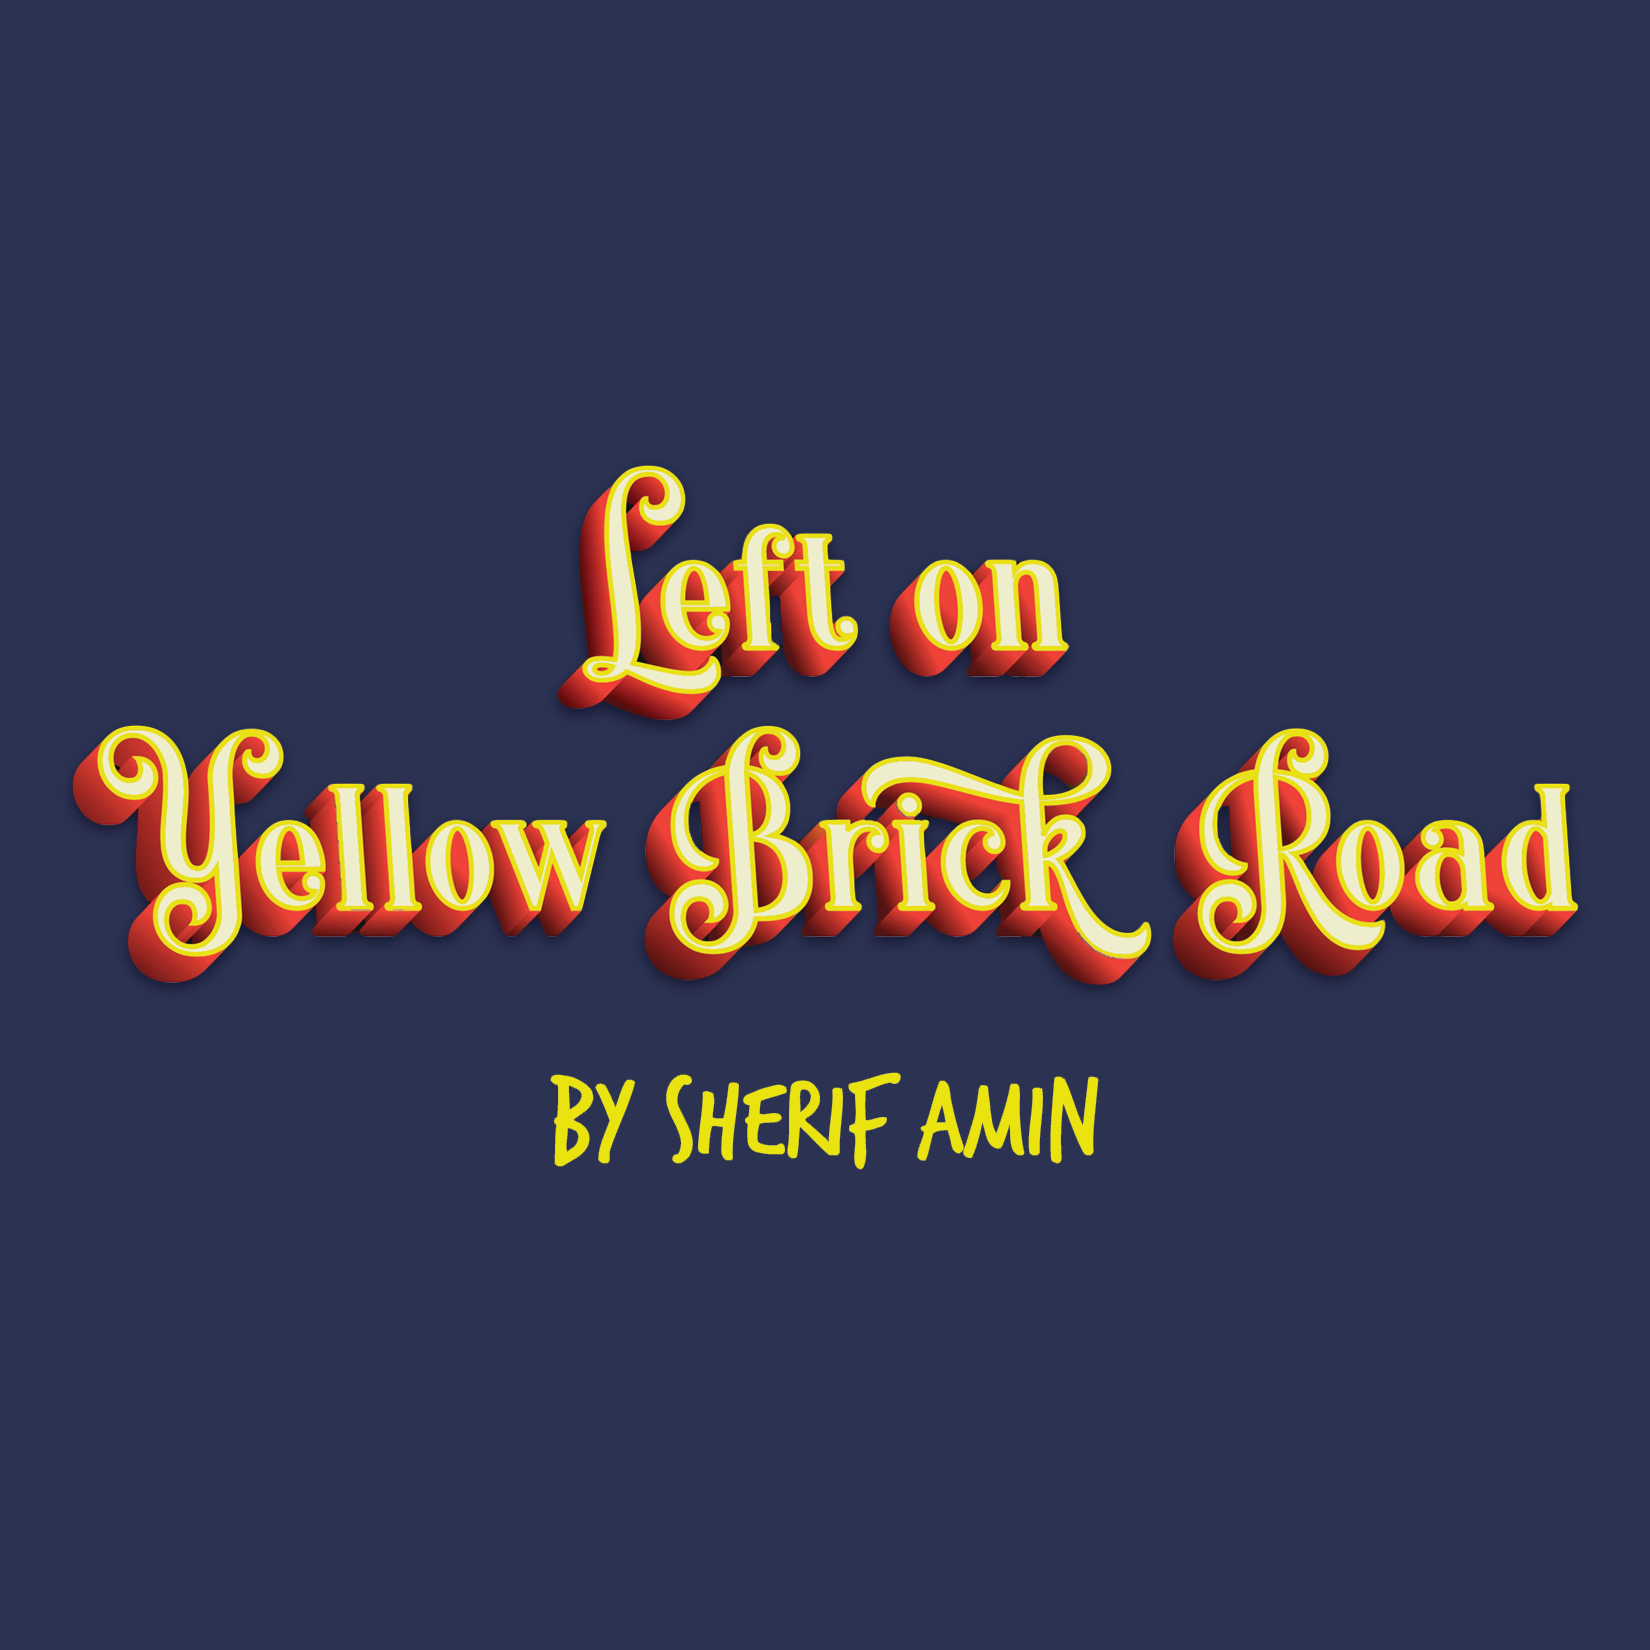 Left on Yellow Brick Road by Sherif Amin